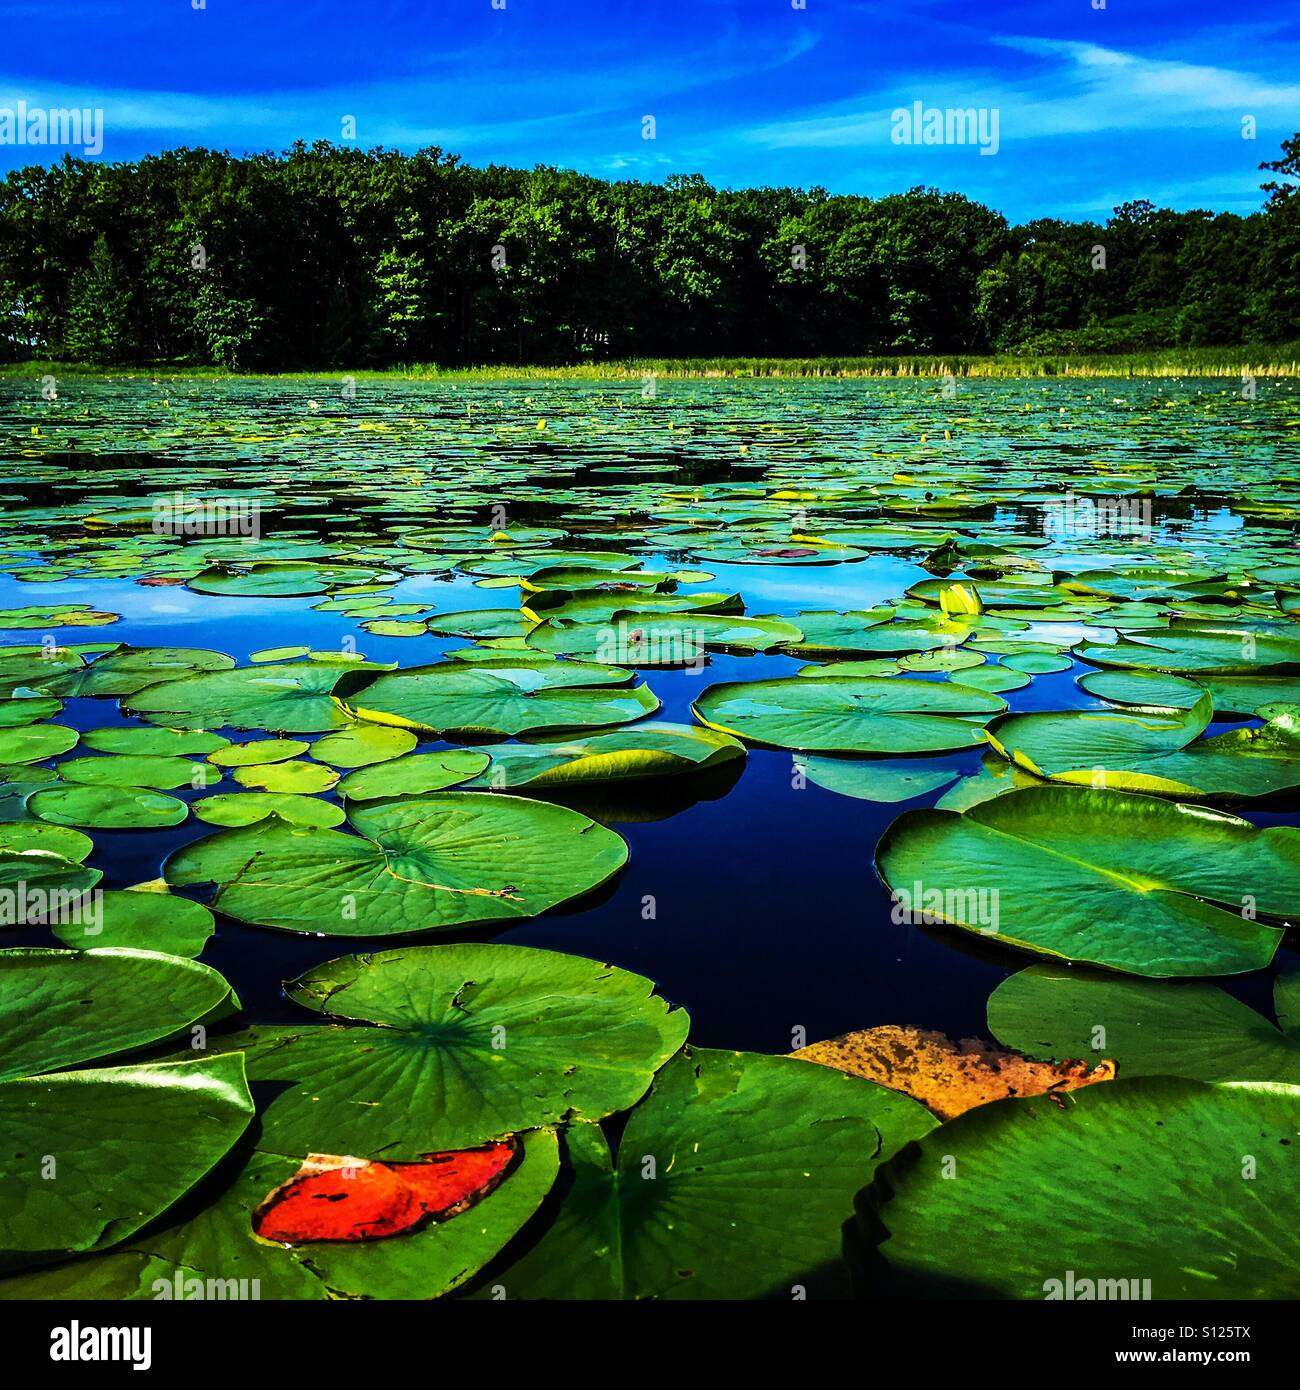 Lilli pads on a lake in Minnesota - Stock Image